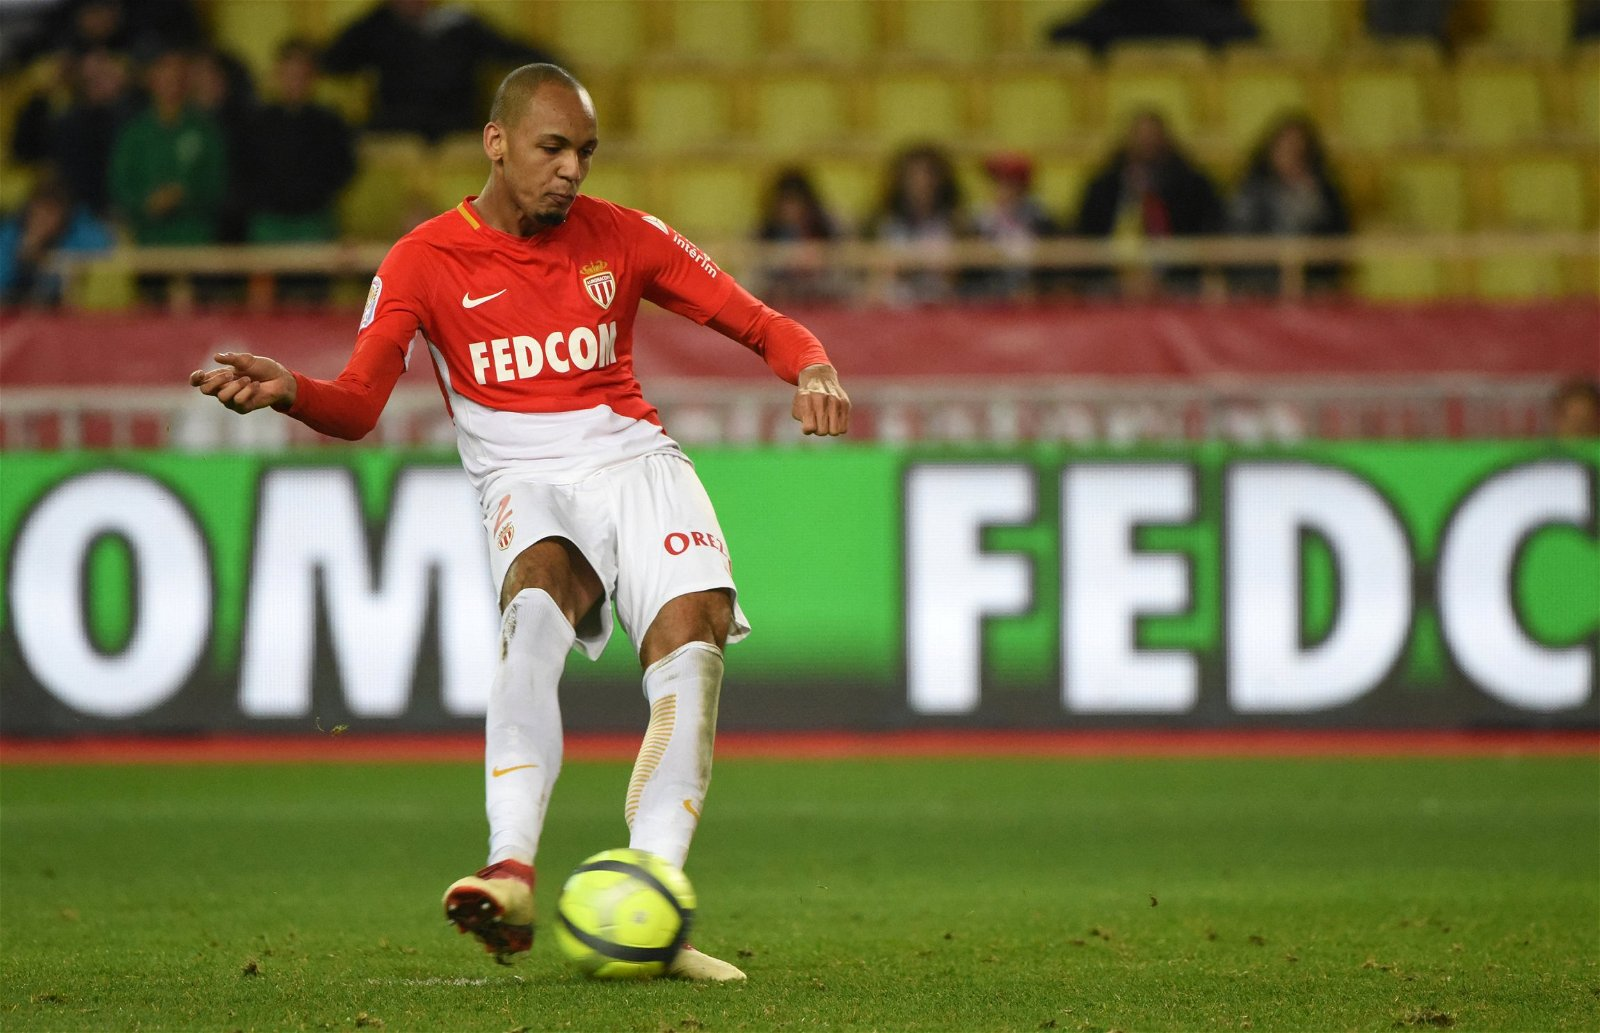 Fabinho takes a free kick for Monaco